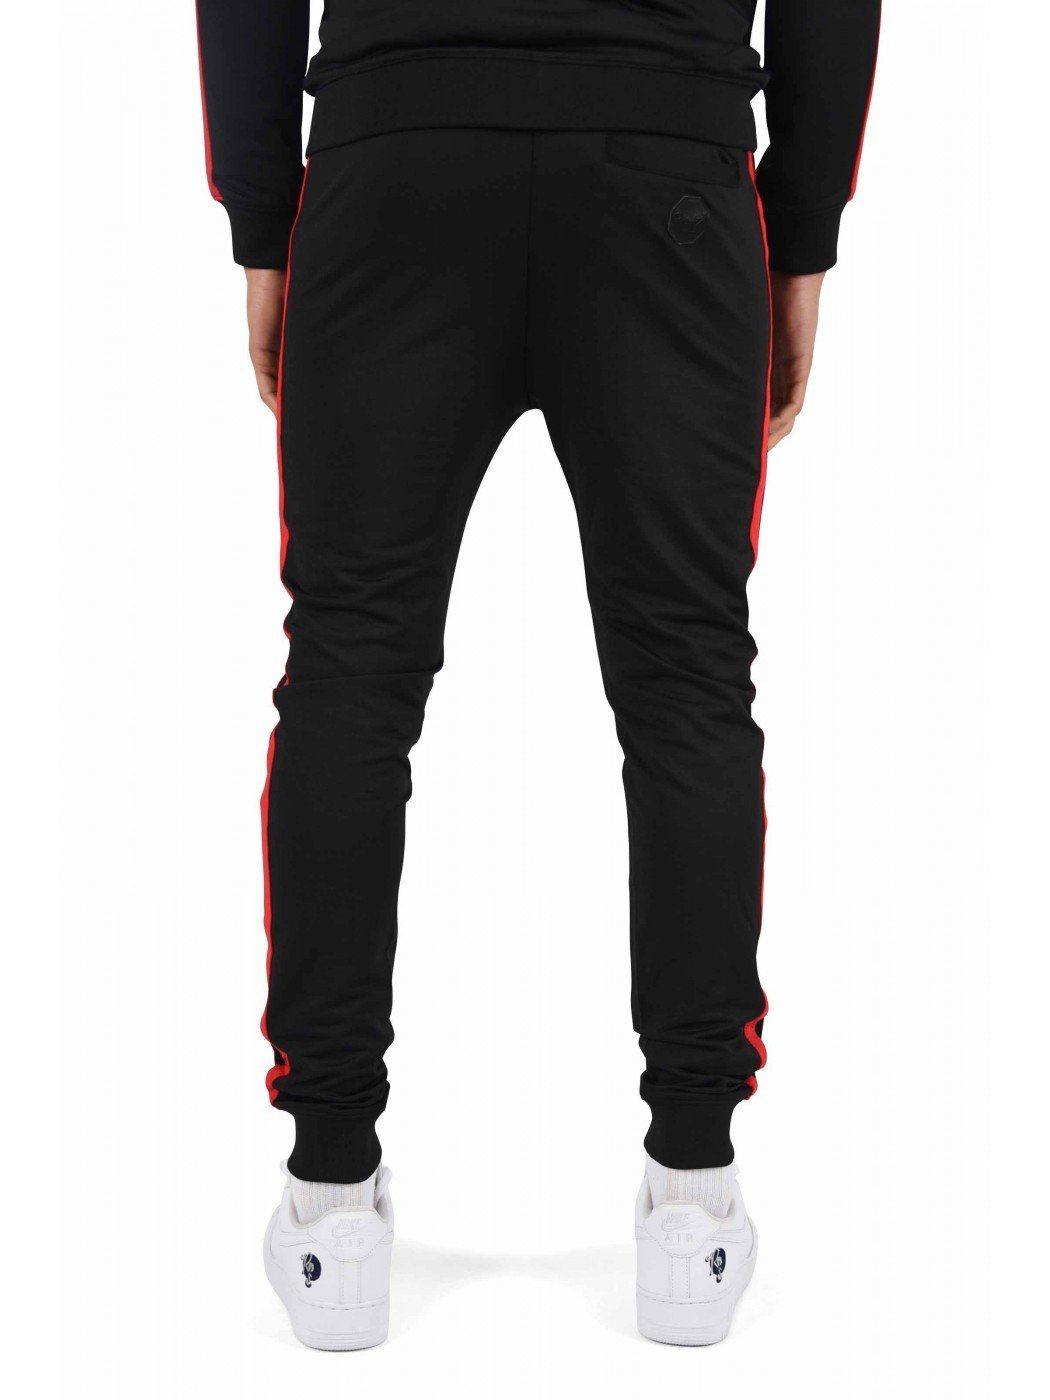 5834fd97cb92 Pantalon de jogging à doubles bandes Homme Project X Paris. Next